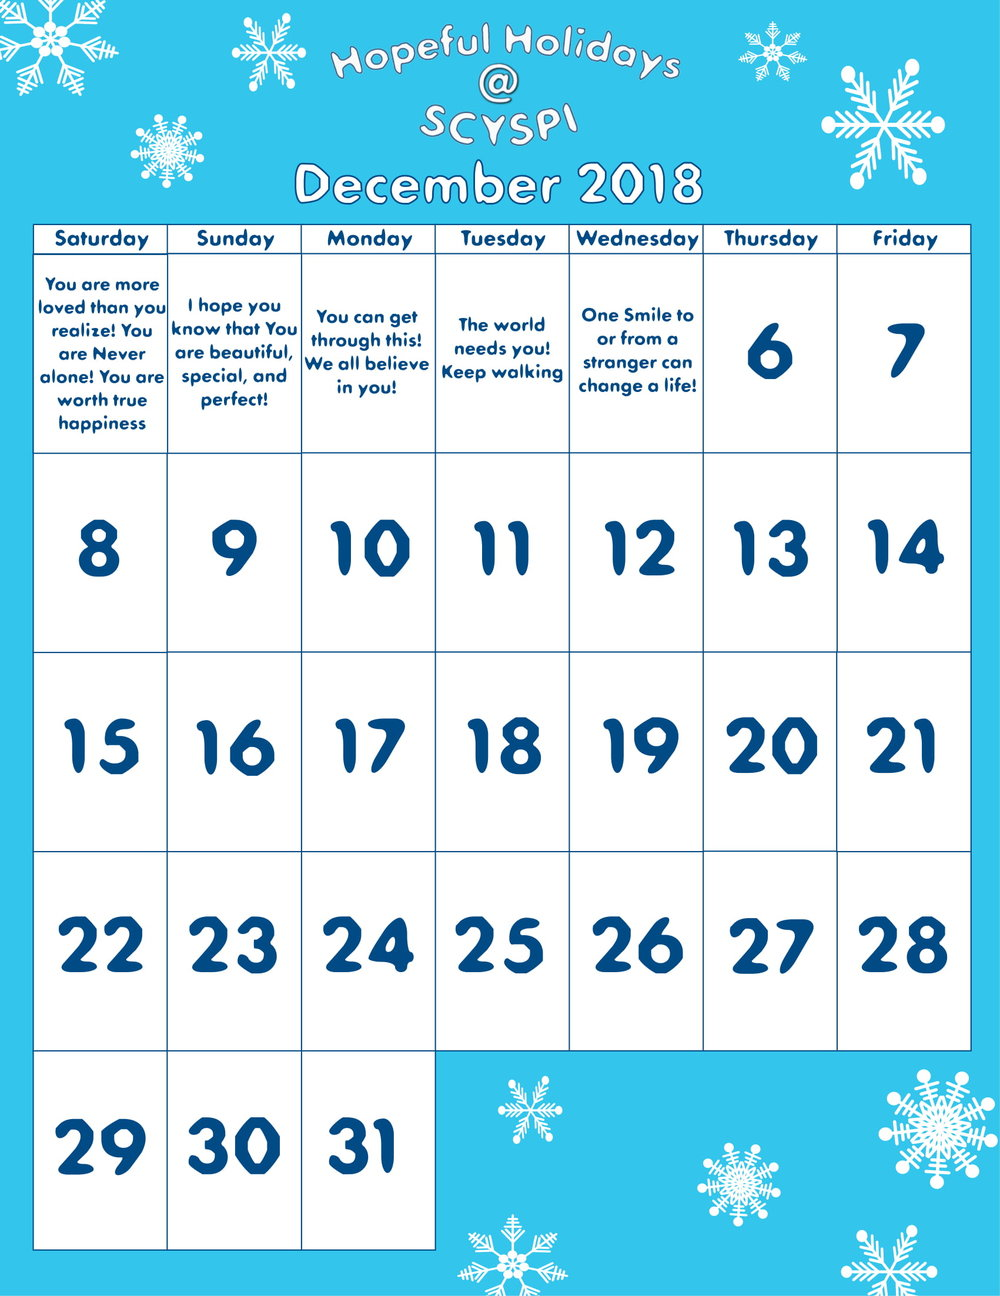 hopeful holidays calendar dec 5th-1.jpg